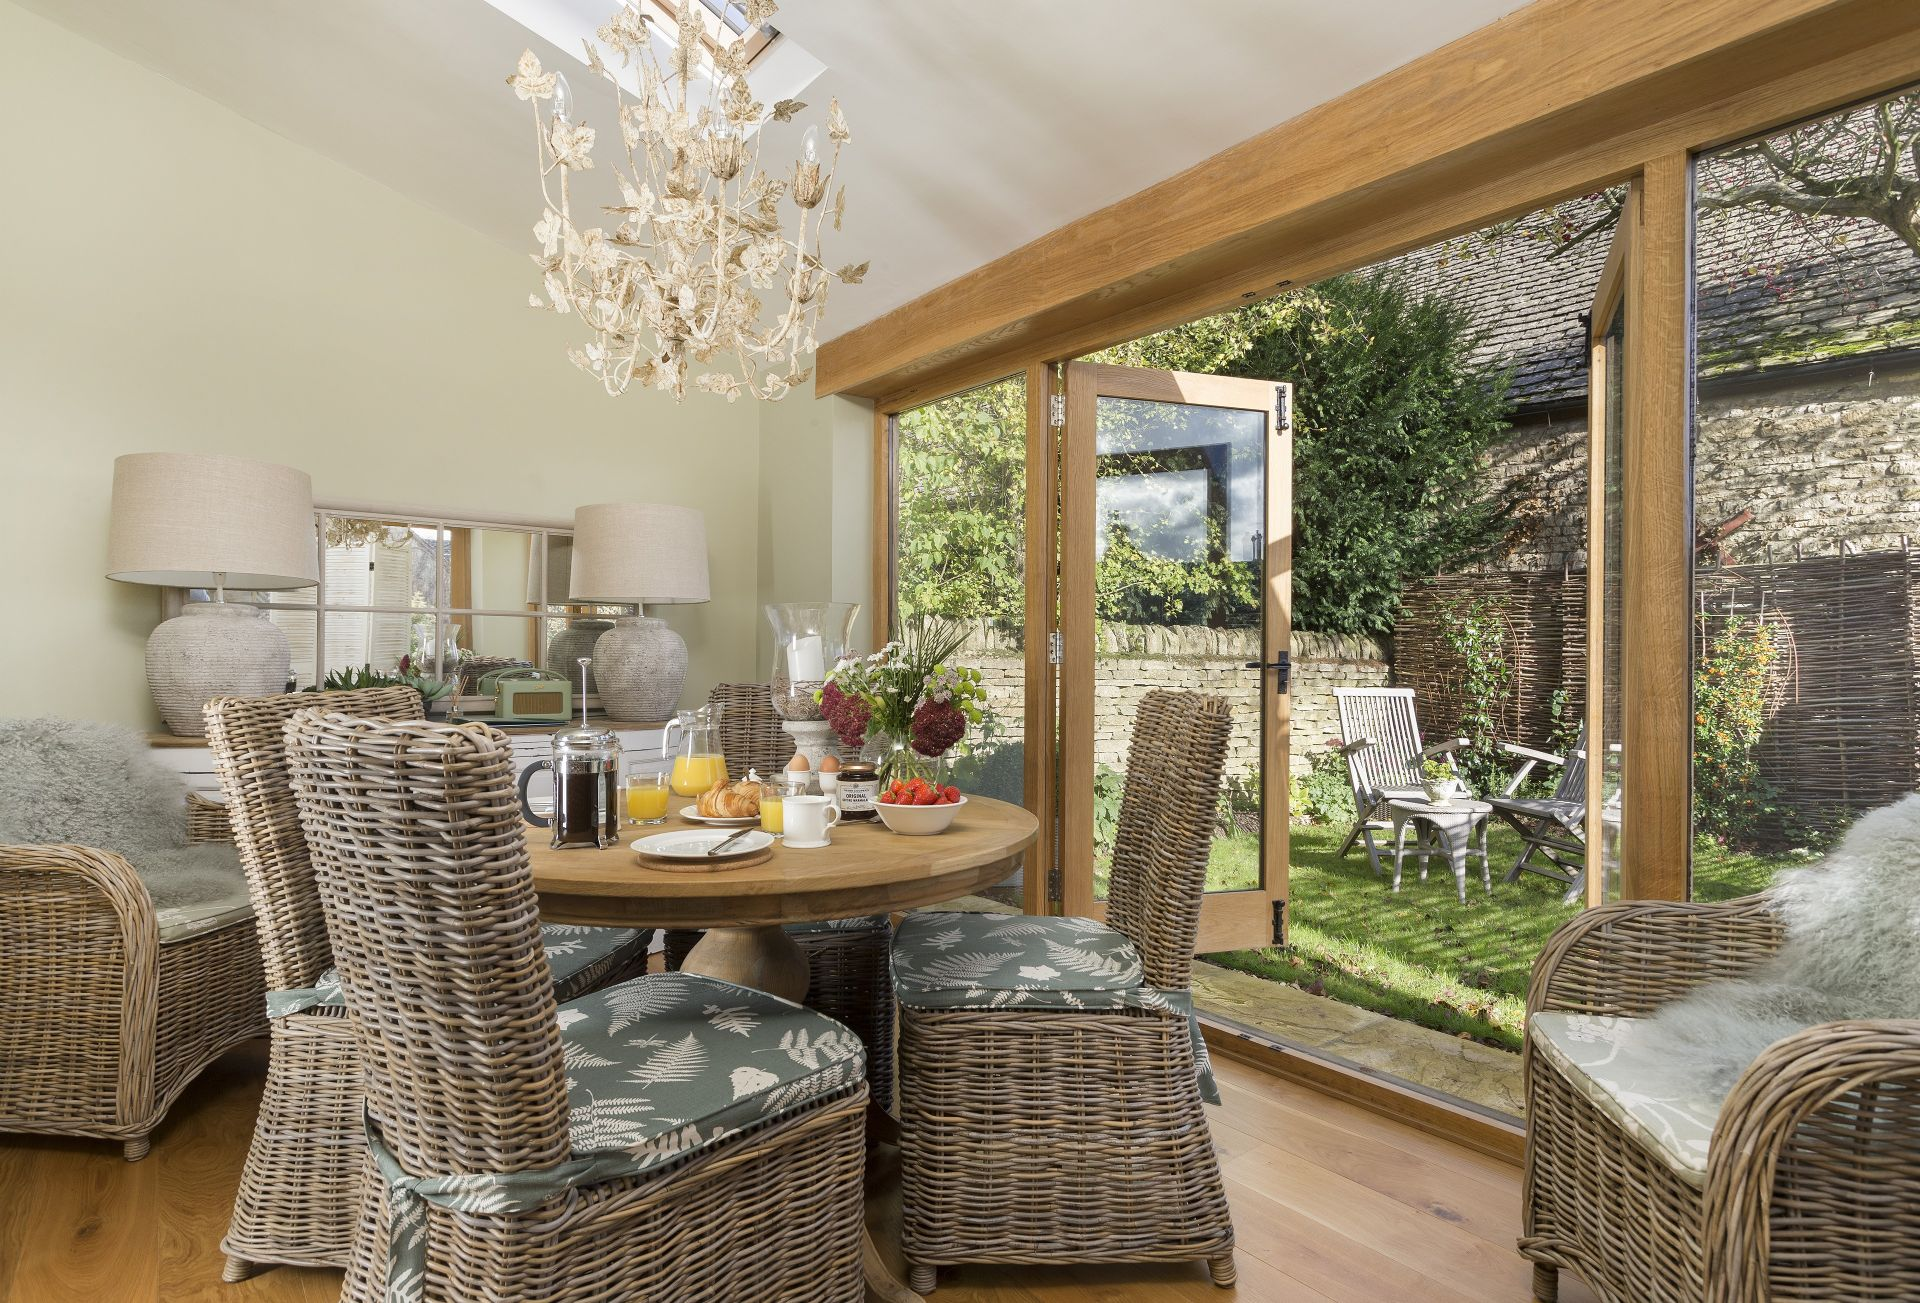 Ground floor: Garden room with dining table and french doors opening on the private patio and enclosed garden